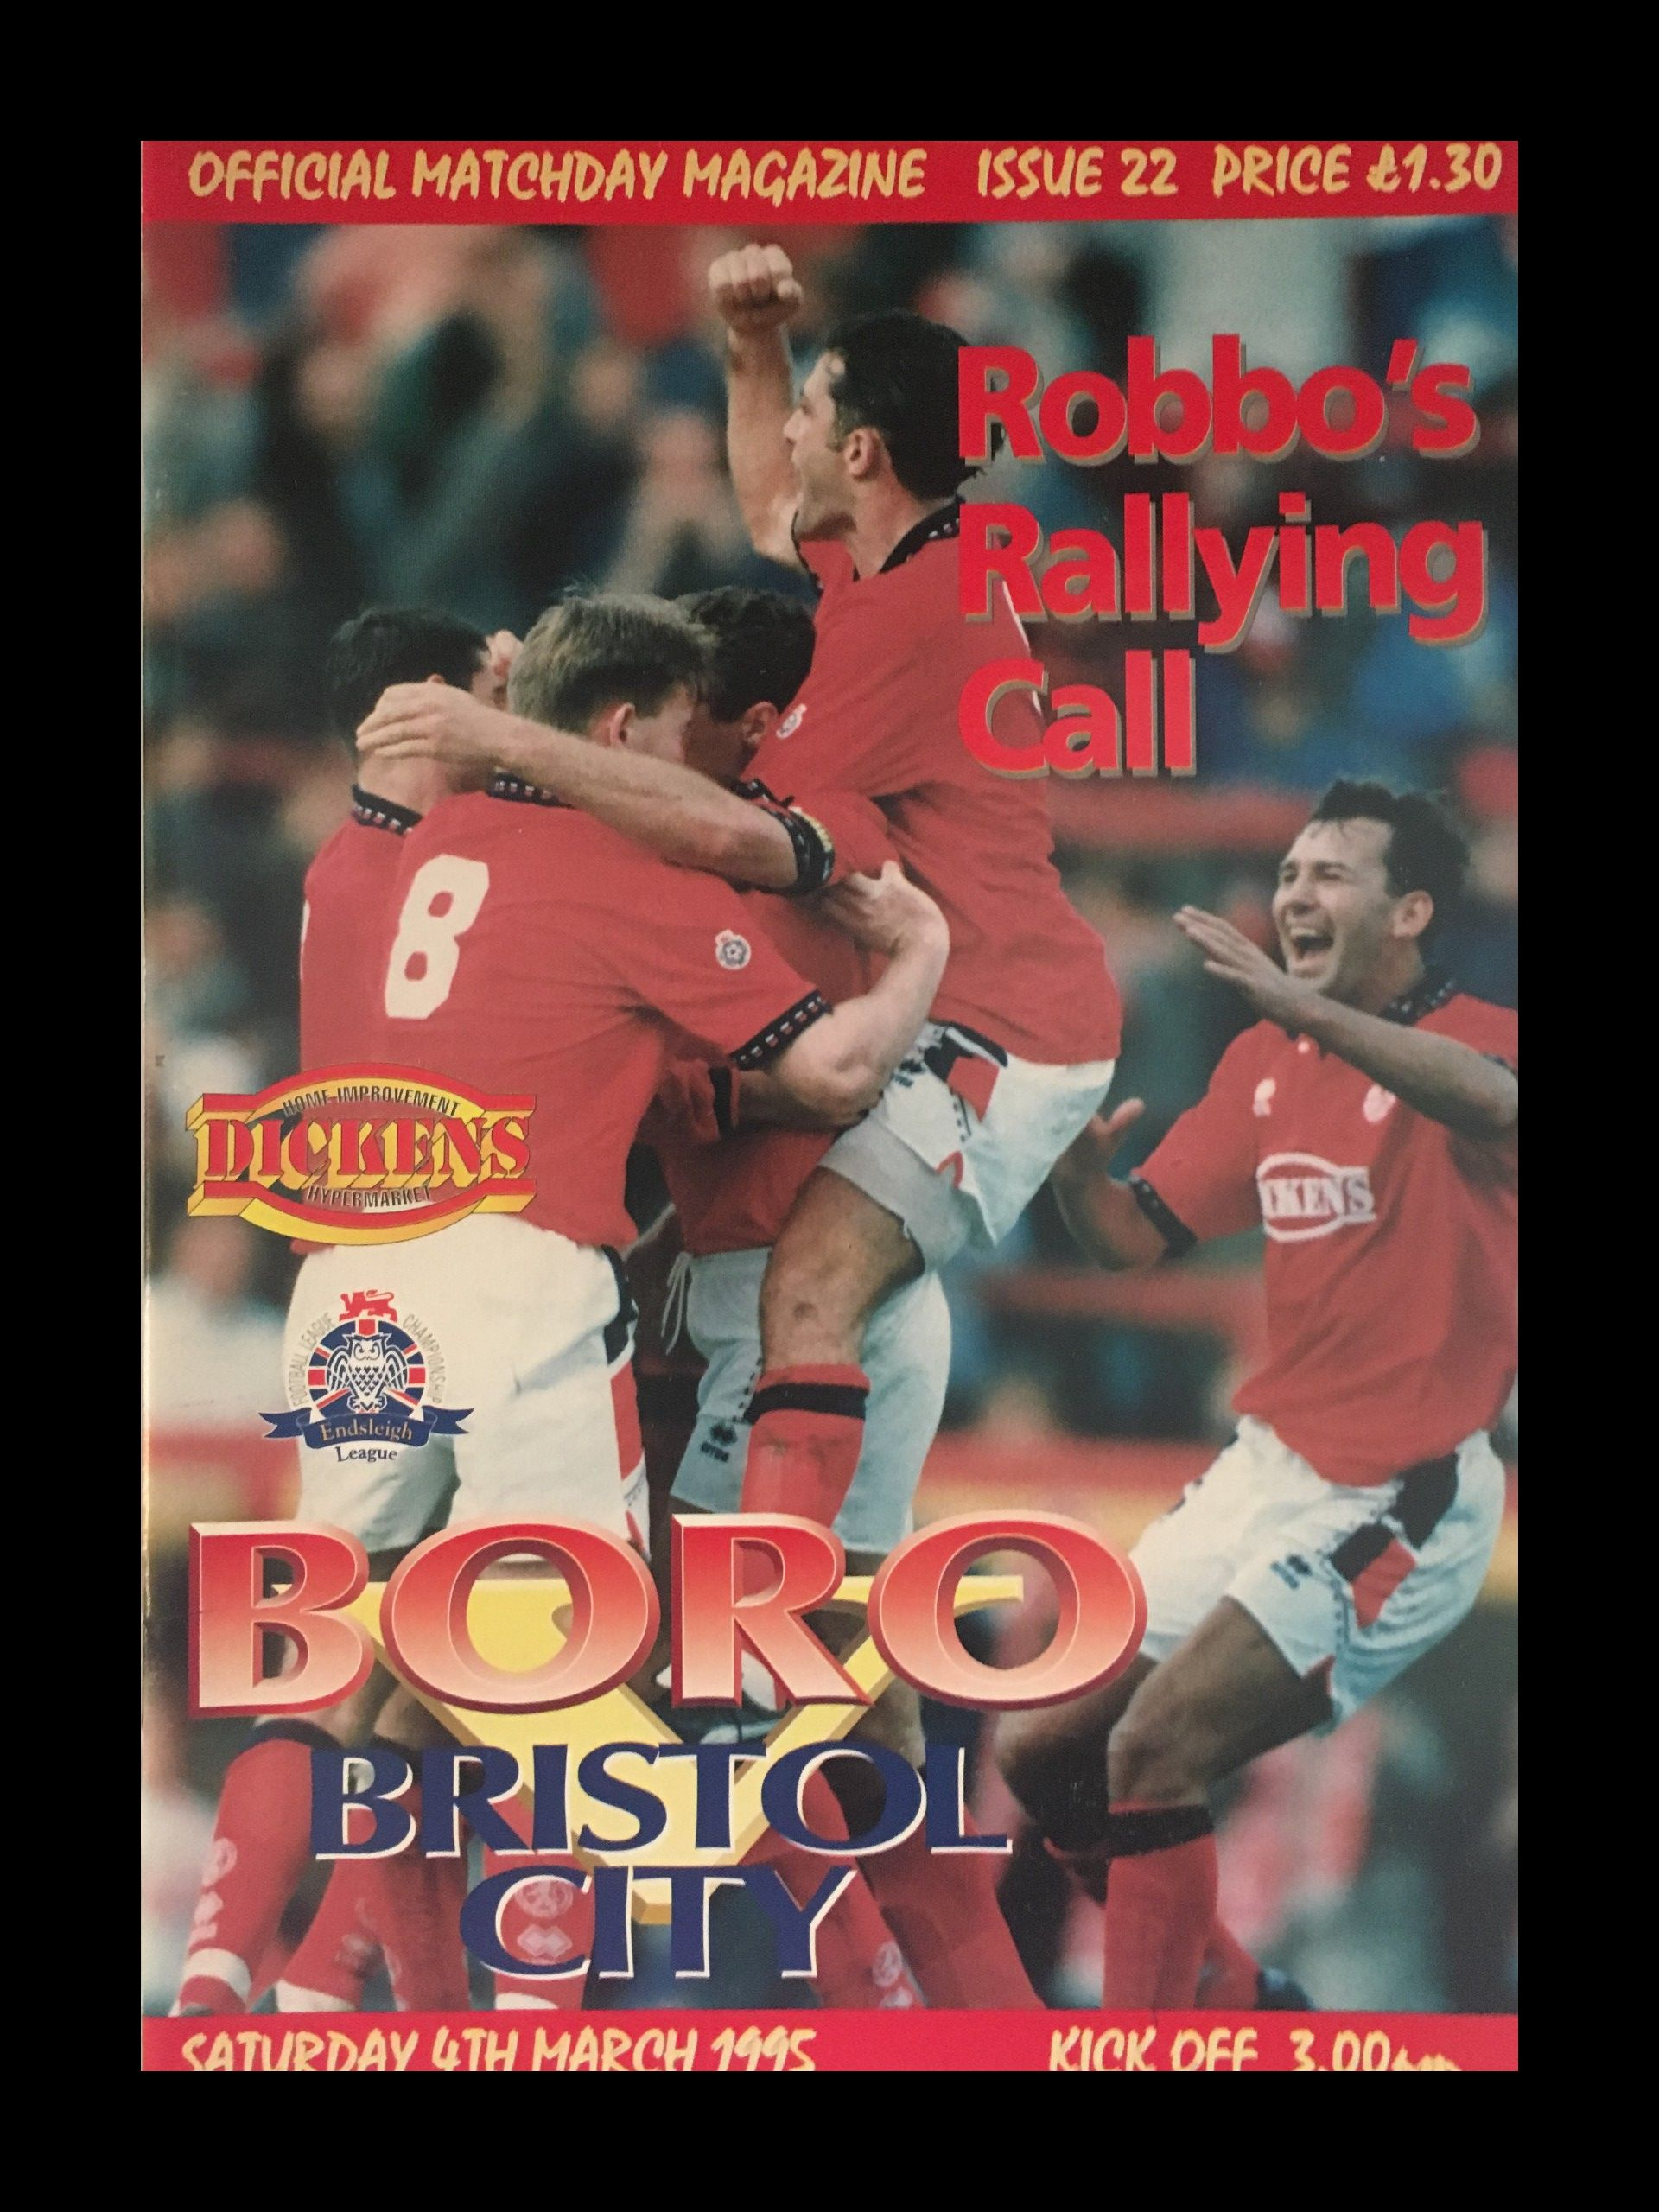 Middlesbrough v Bristol City 04-03-1995 Programme